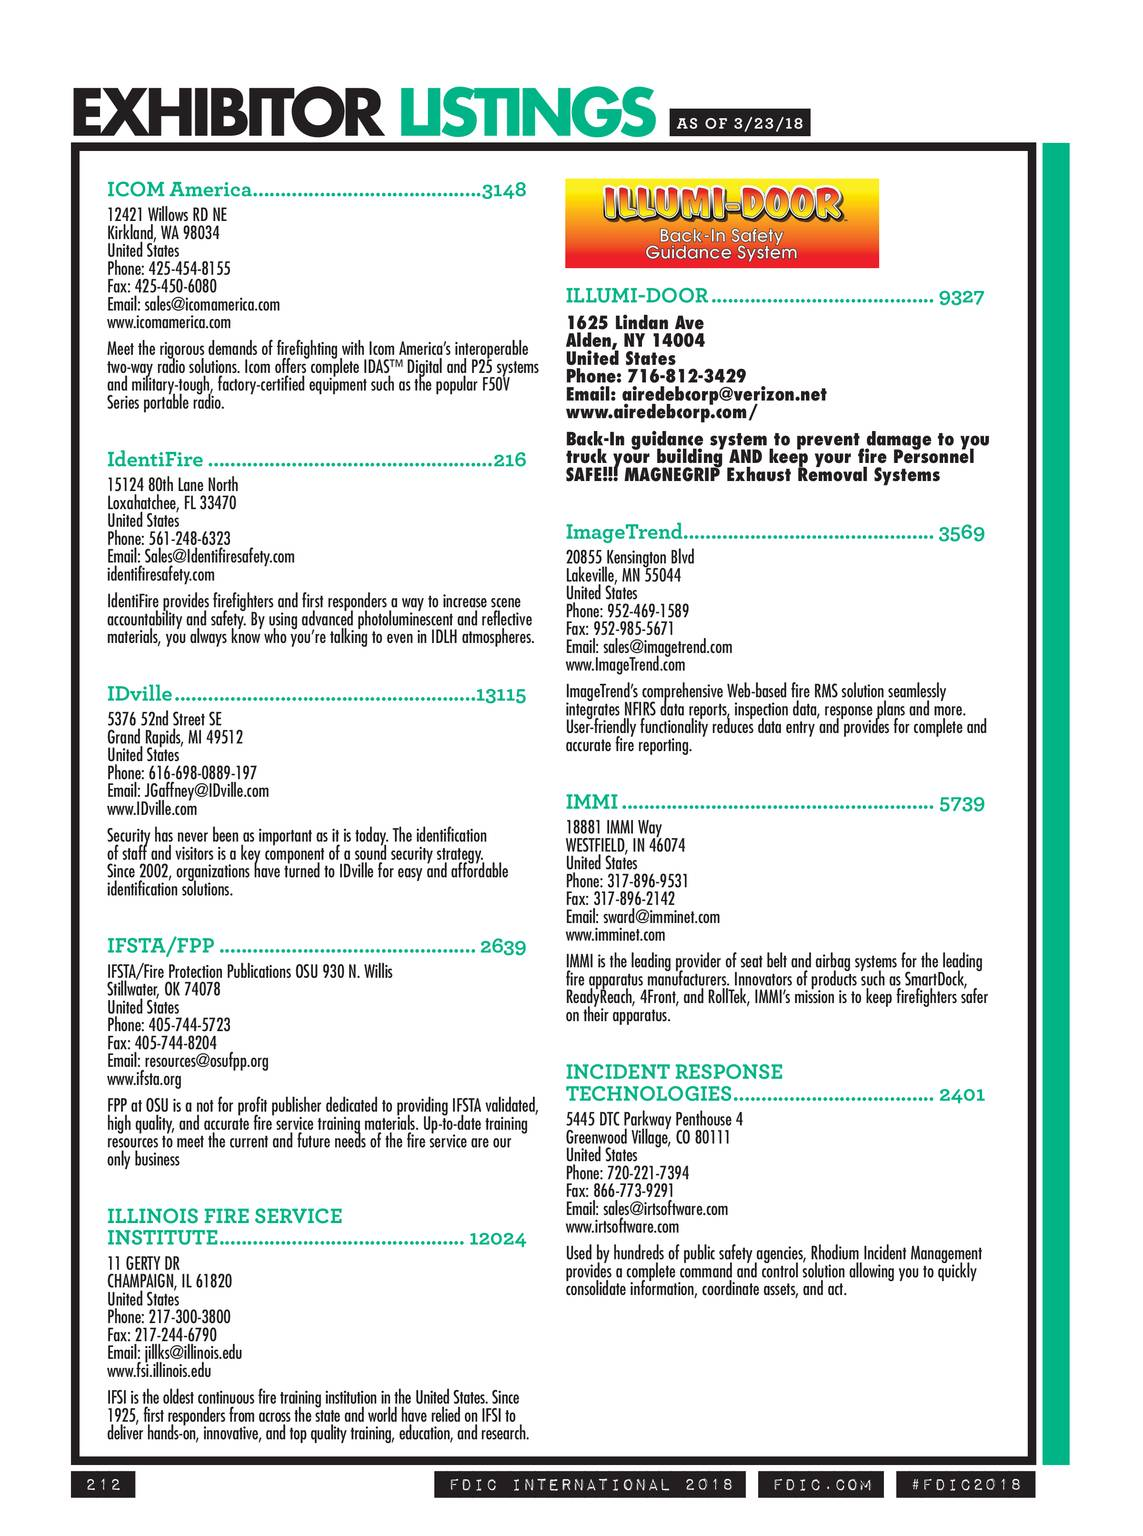 Pennwell Supplements - FDIC 2018 Show Guide - page 213